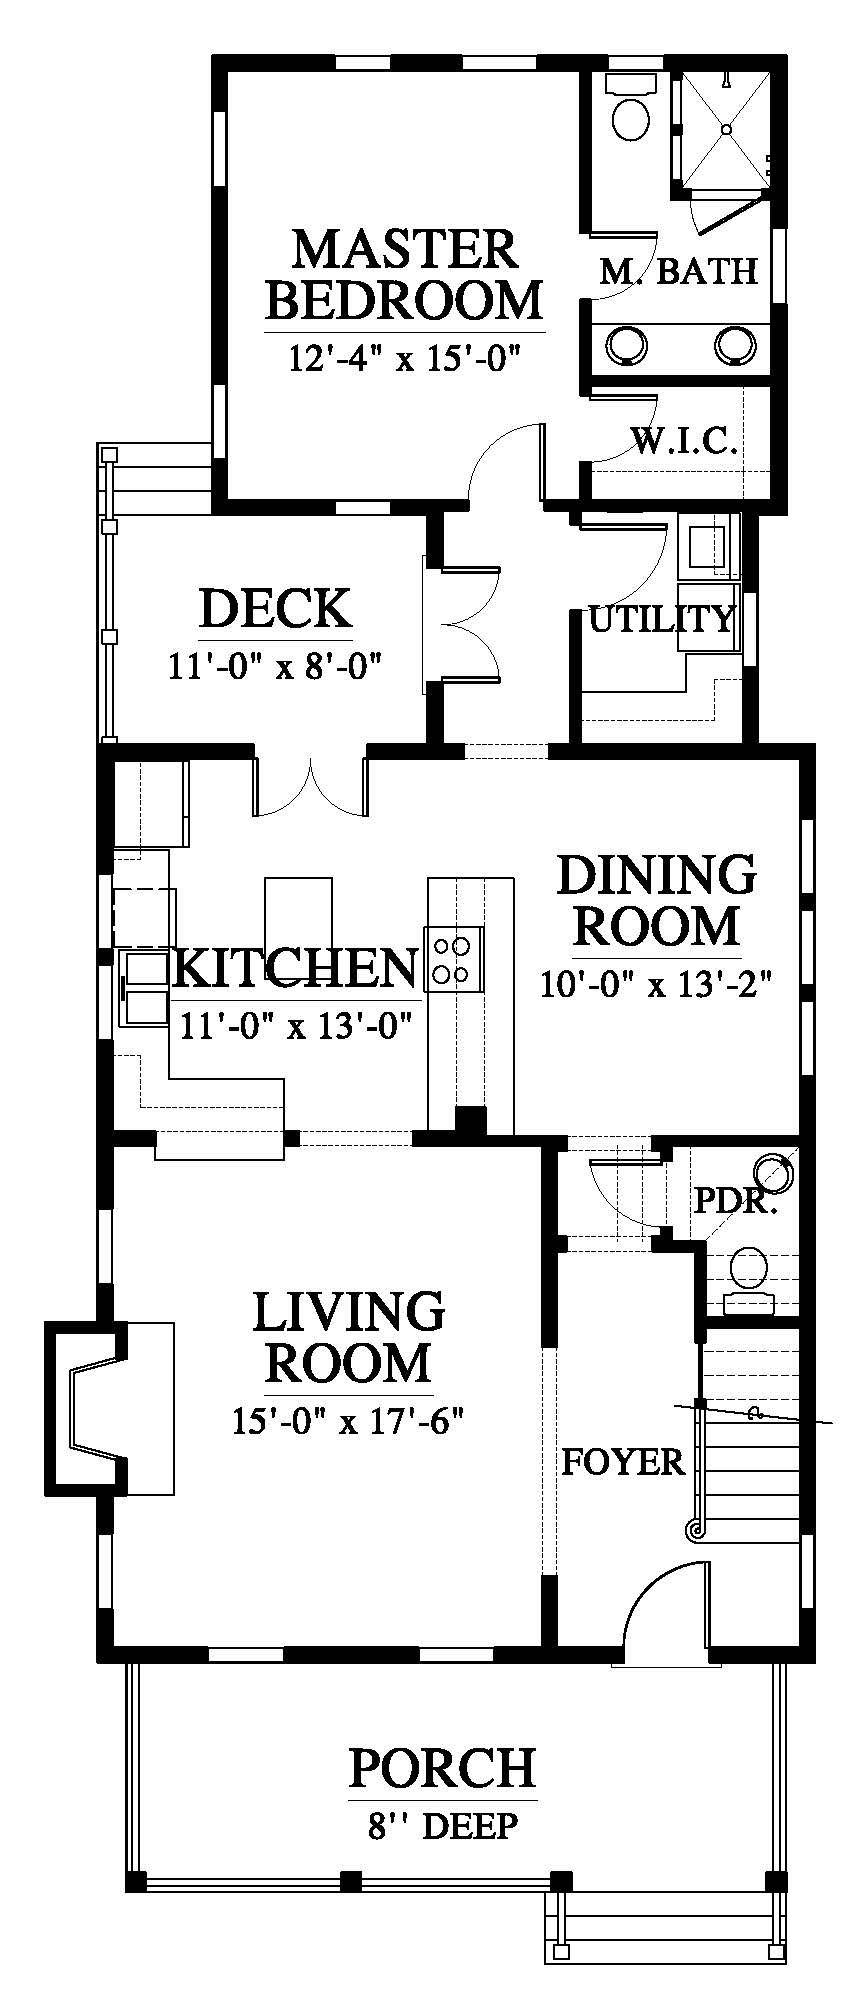 The Chechessee River Cottage House Plan C0345 Design From Allison Ramsey Architects One Floor House Plans House Plans One Level House Plans